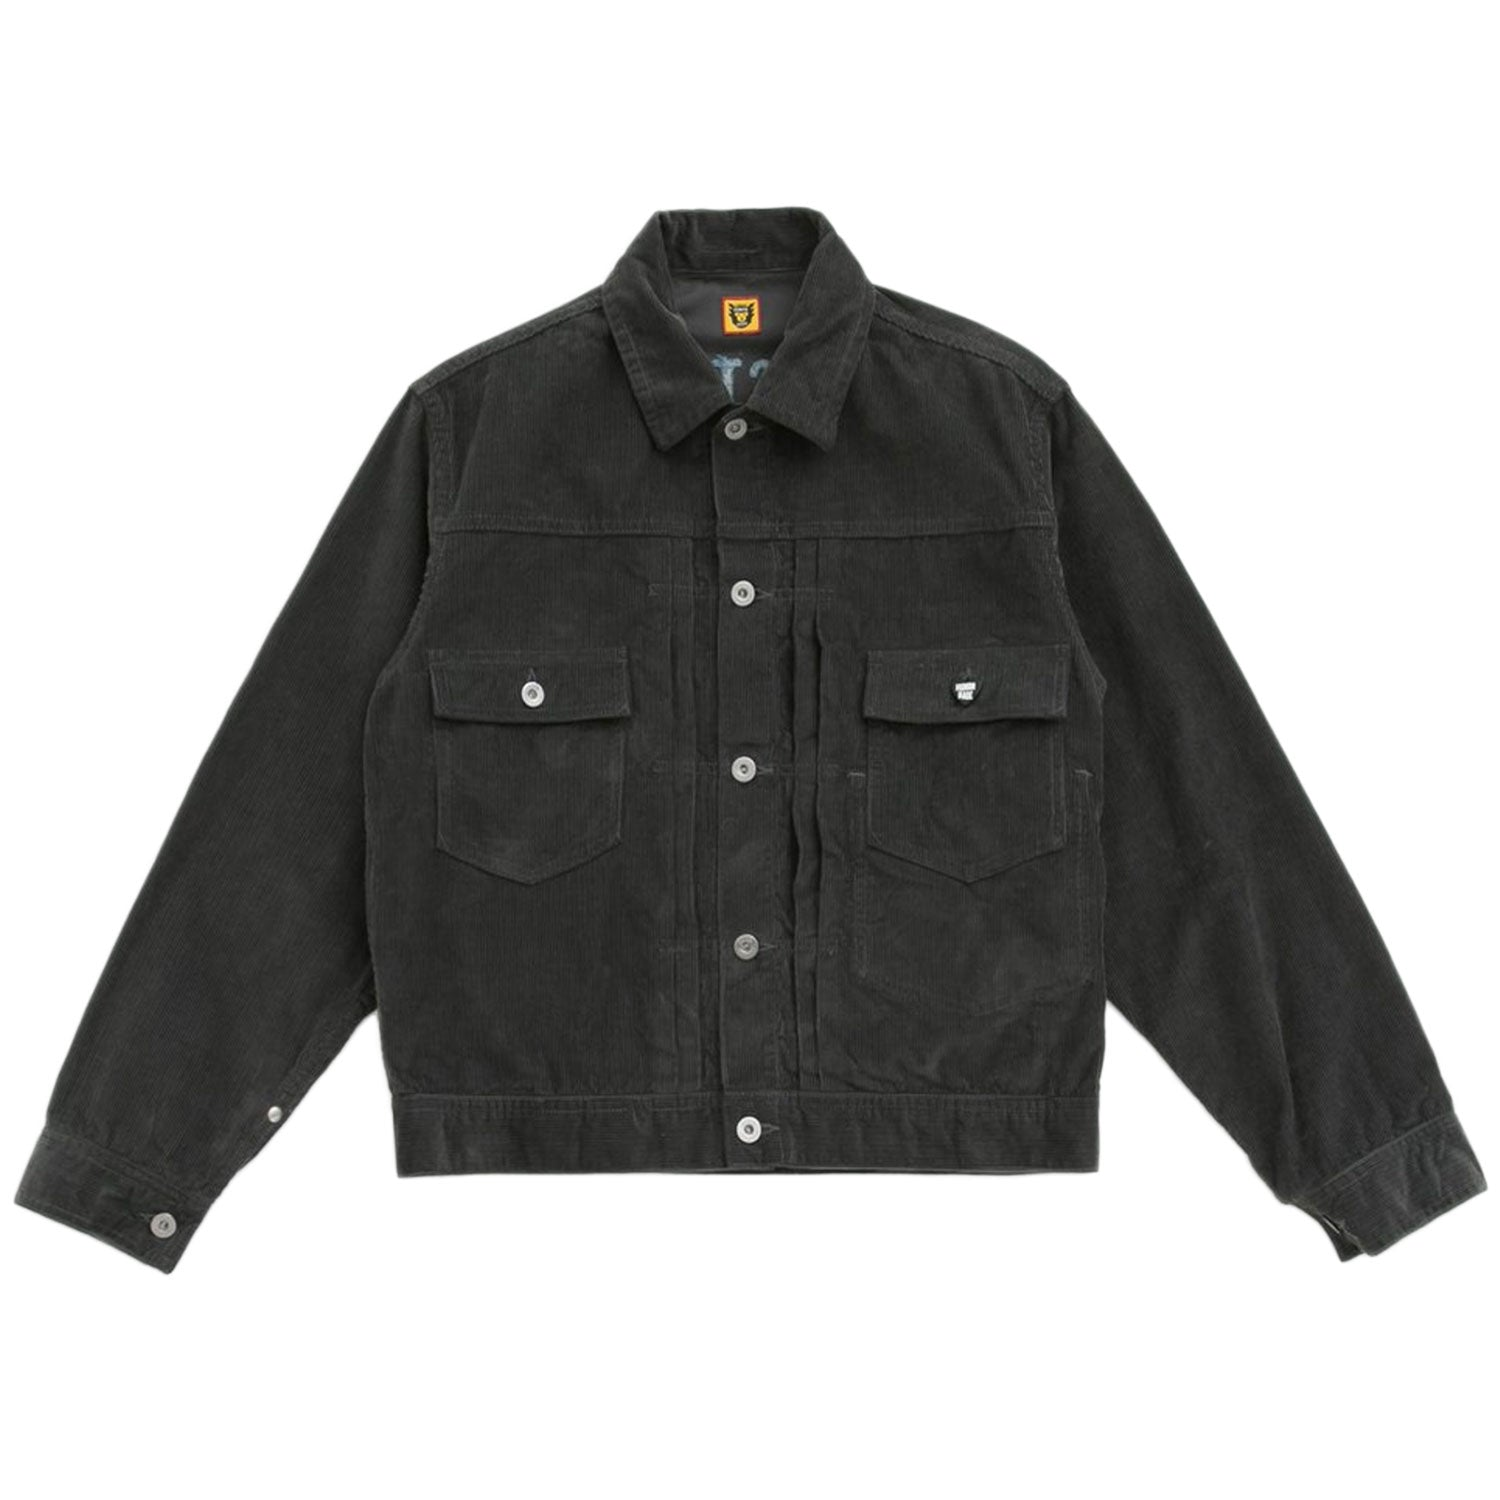 HBZ CORDUROY WORK JACKET